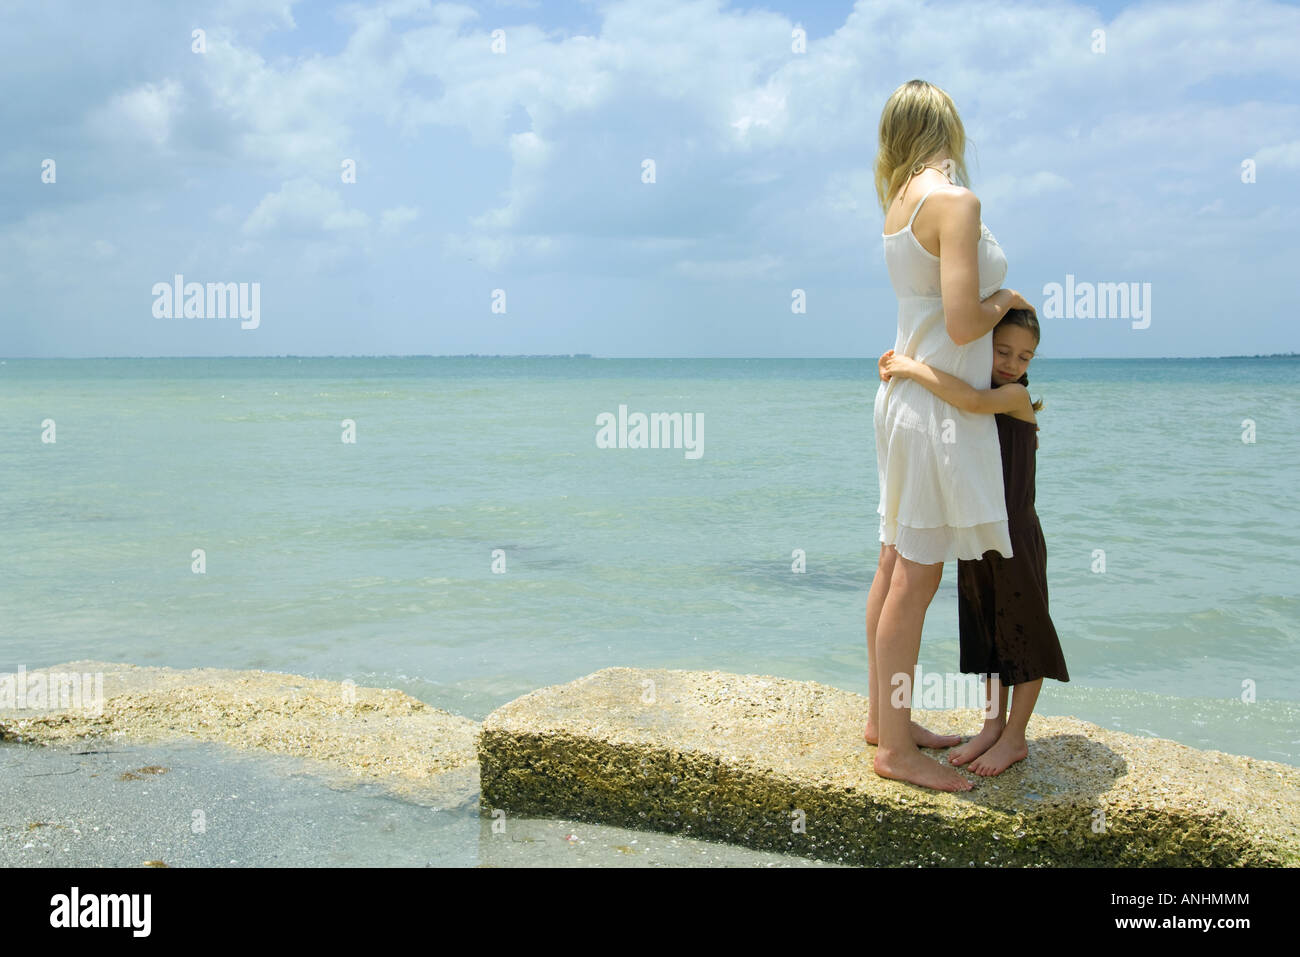 Mother and daughter standing by edge of sea, hugging, full length - Stock Image